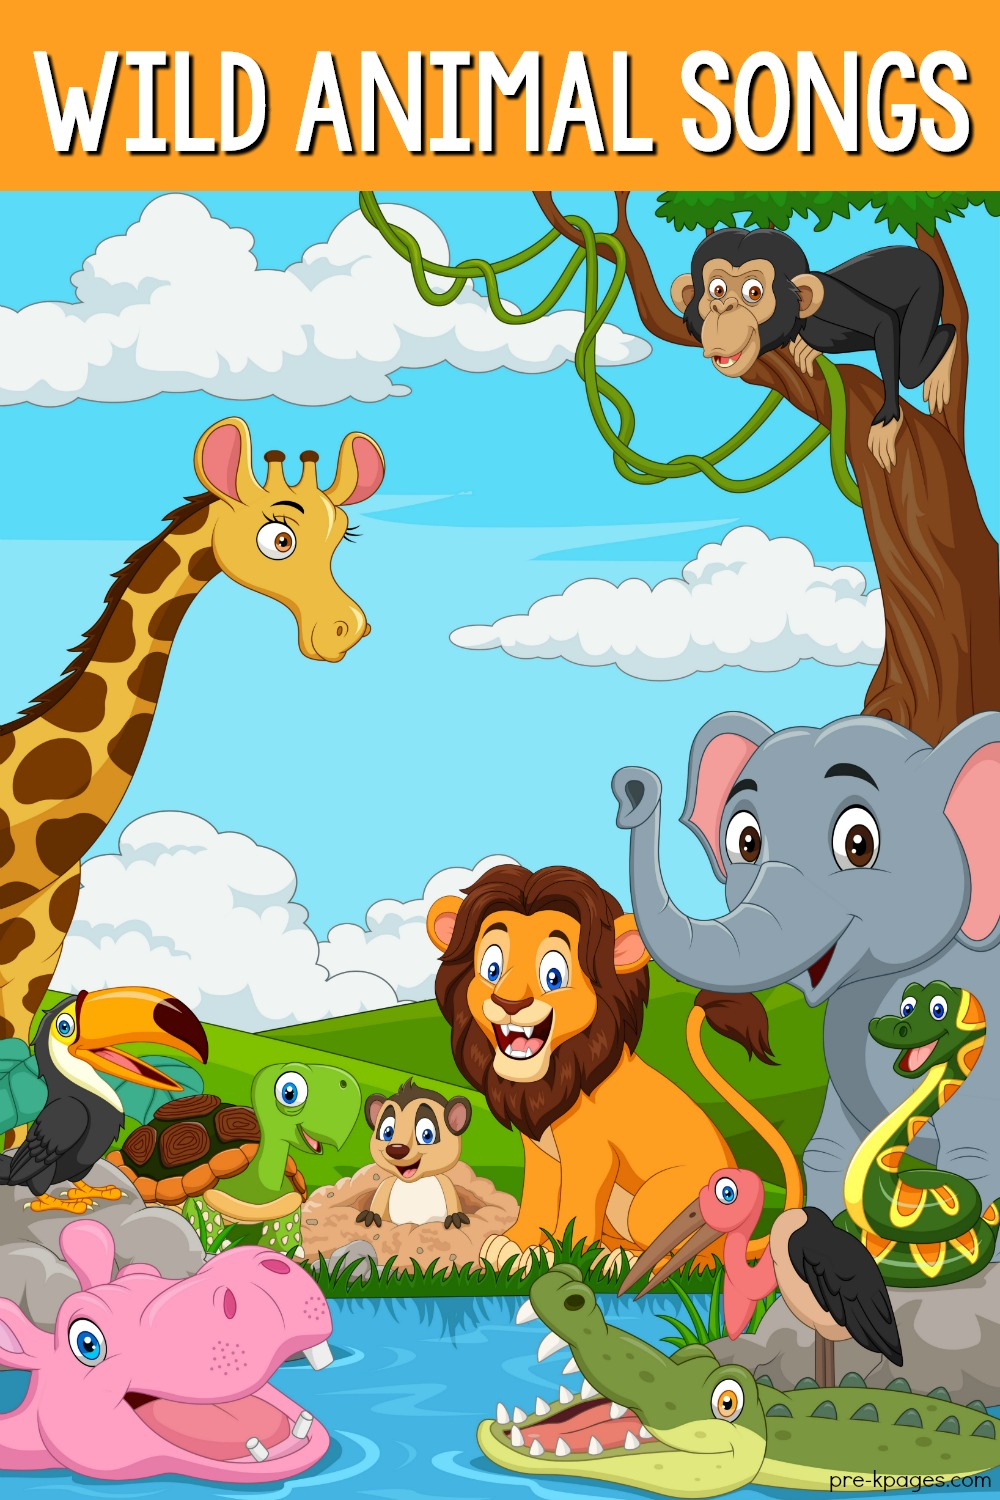 Songs About Wild Animals